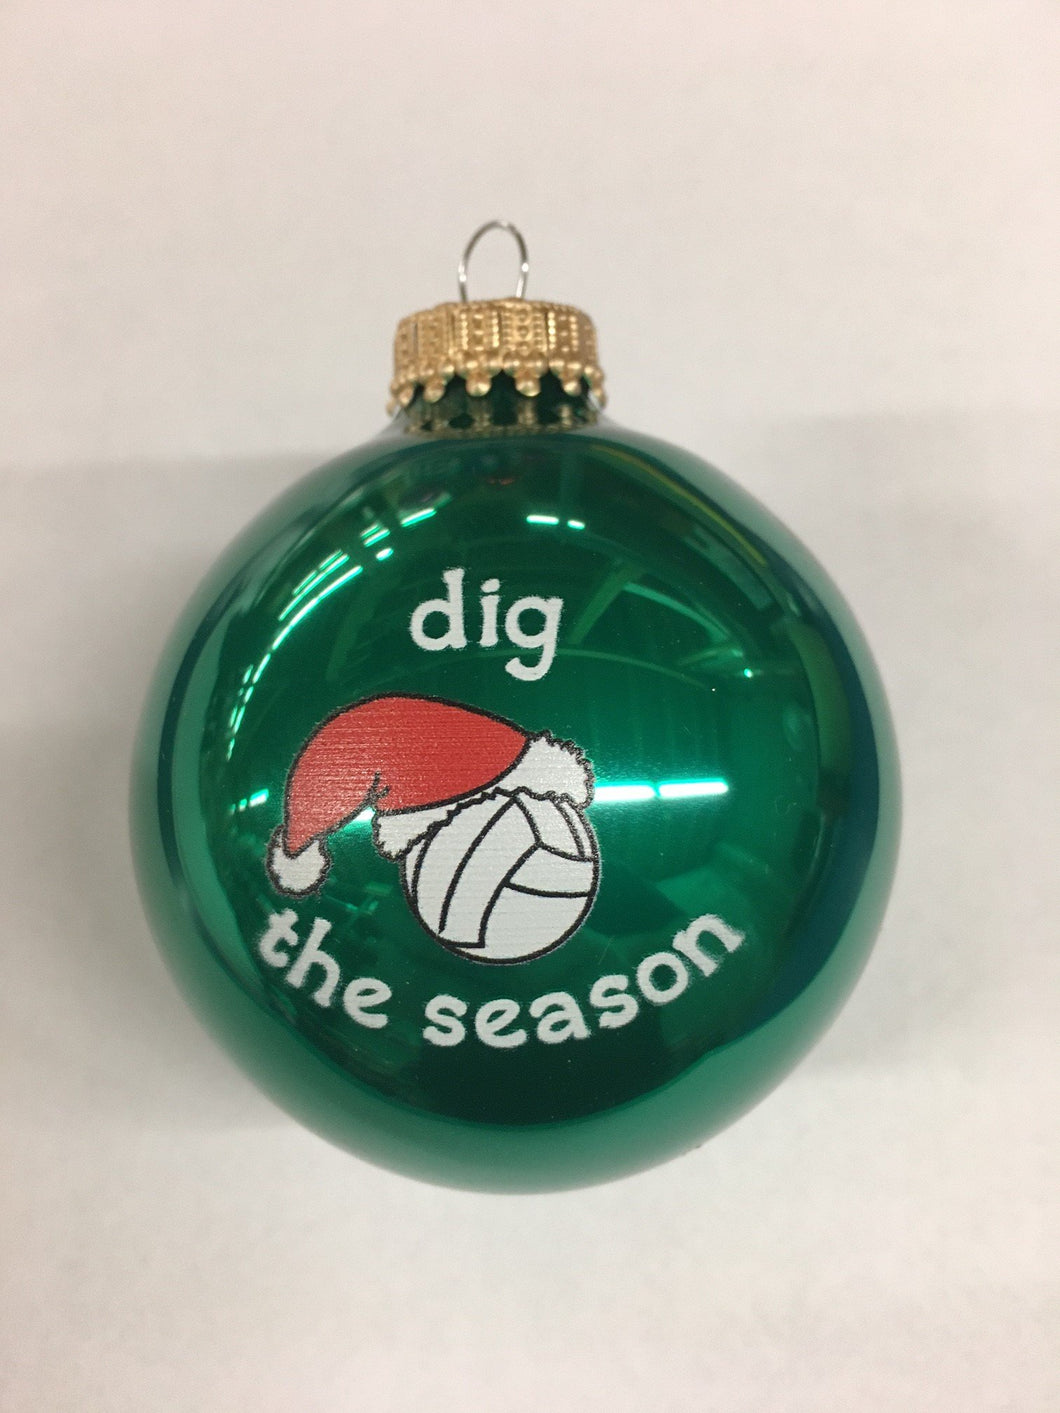 Dig the Season Ornament